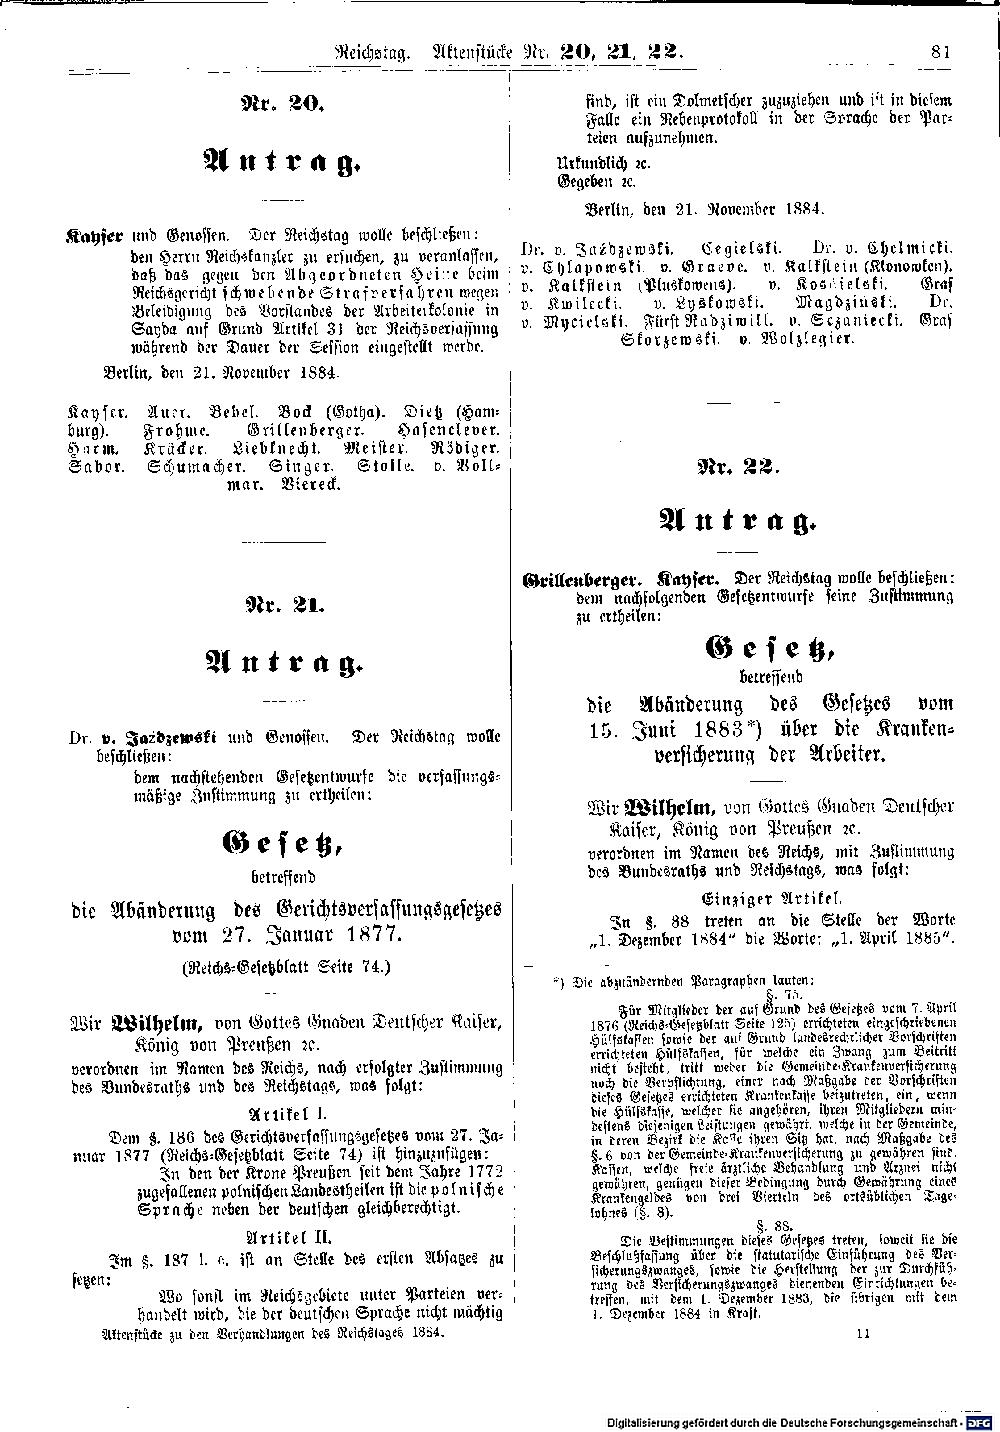 Scan of page 81